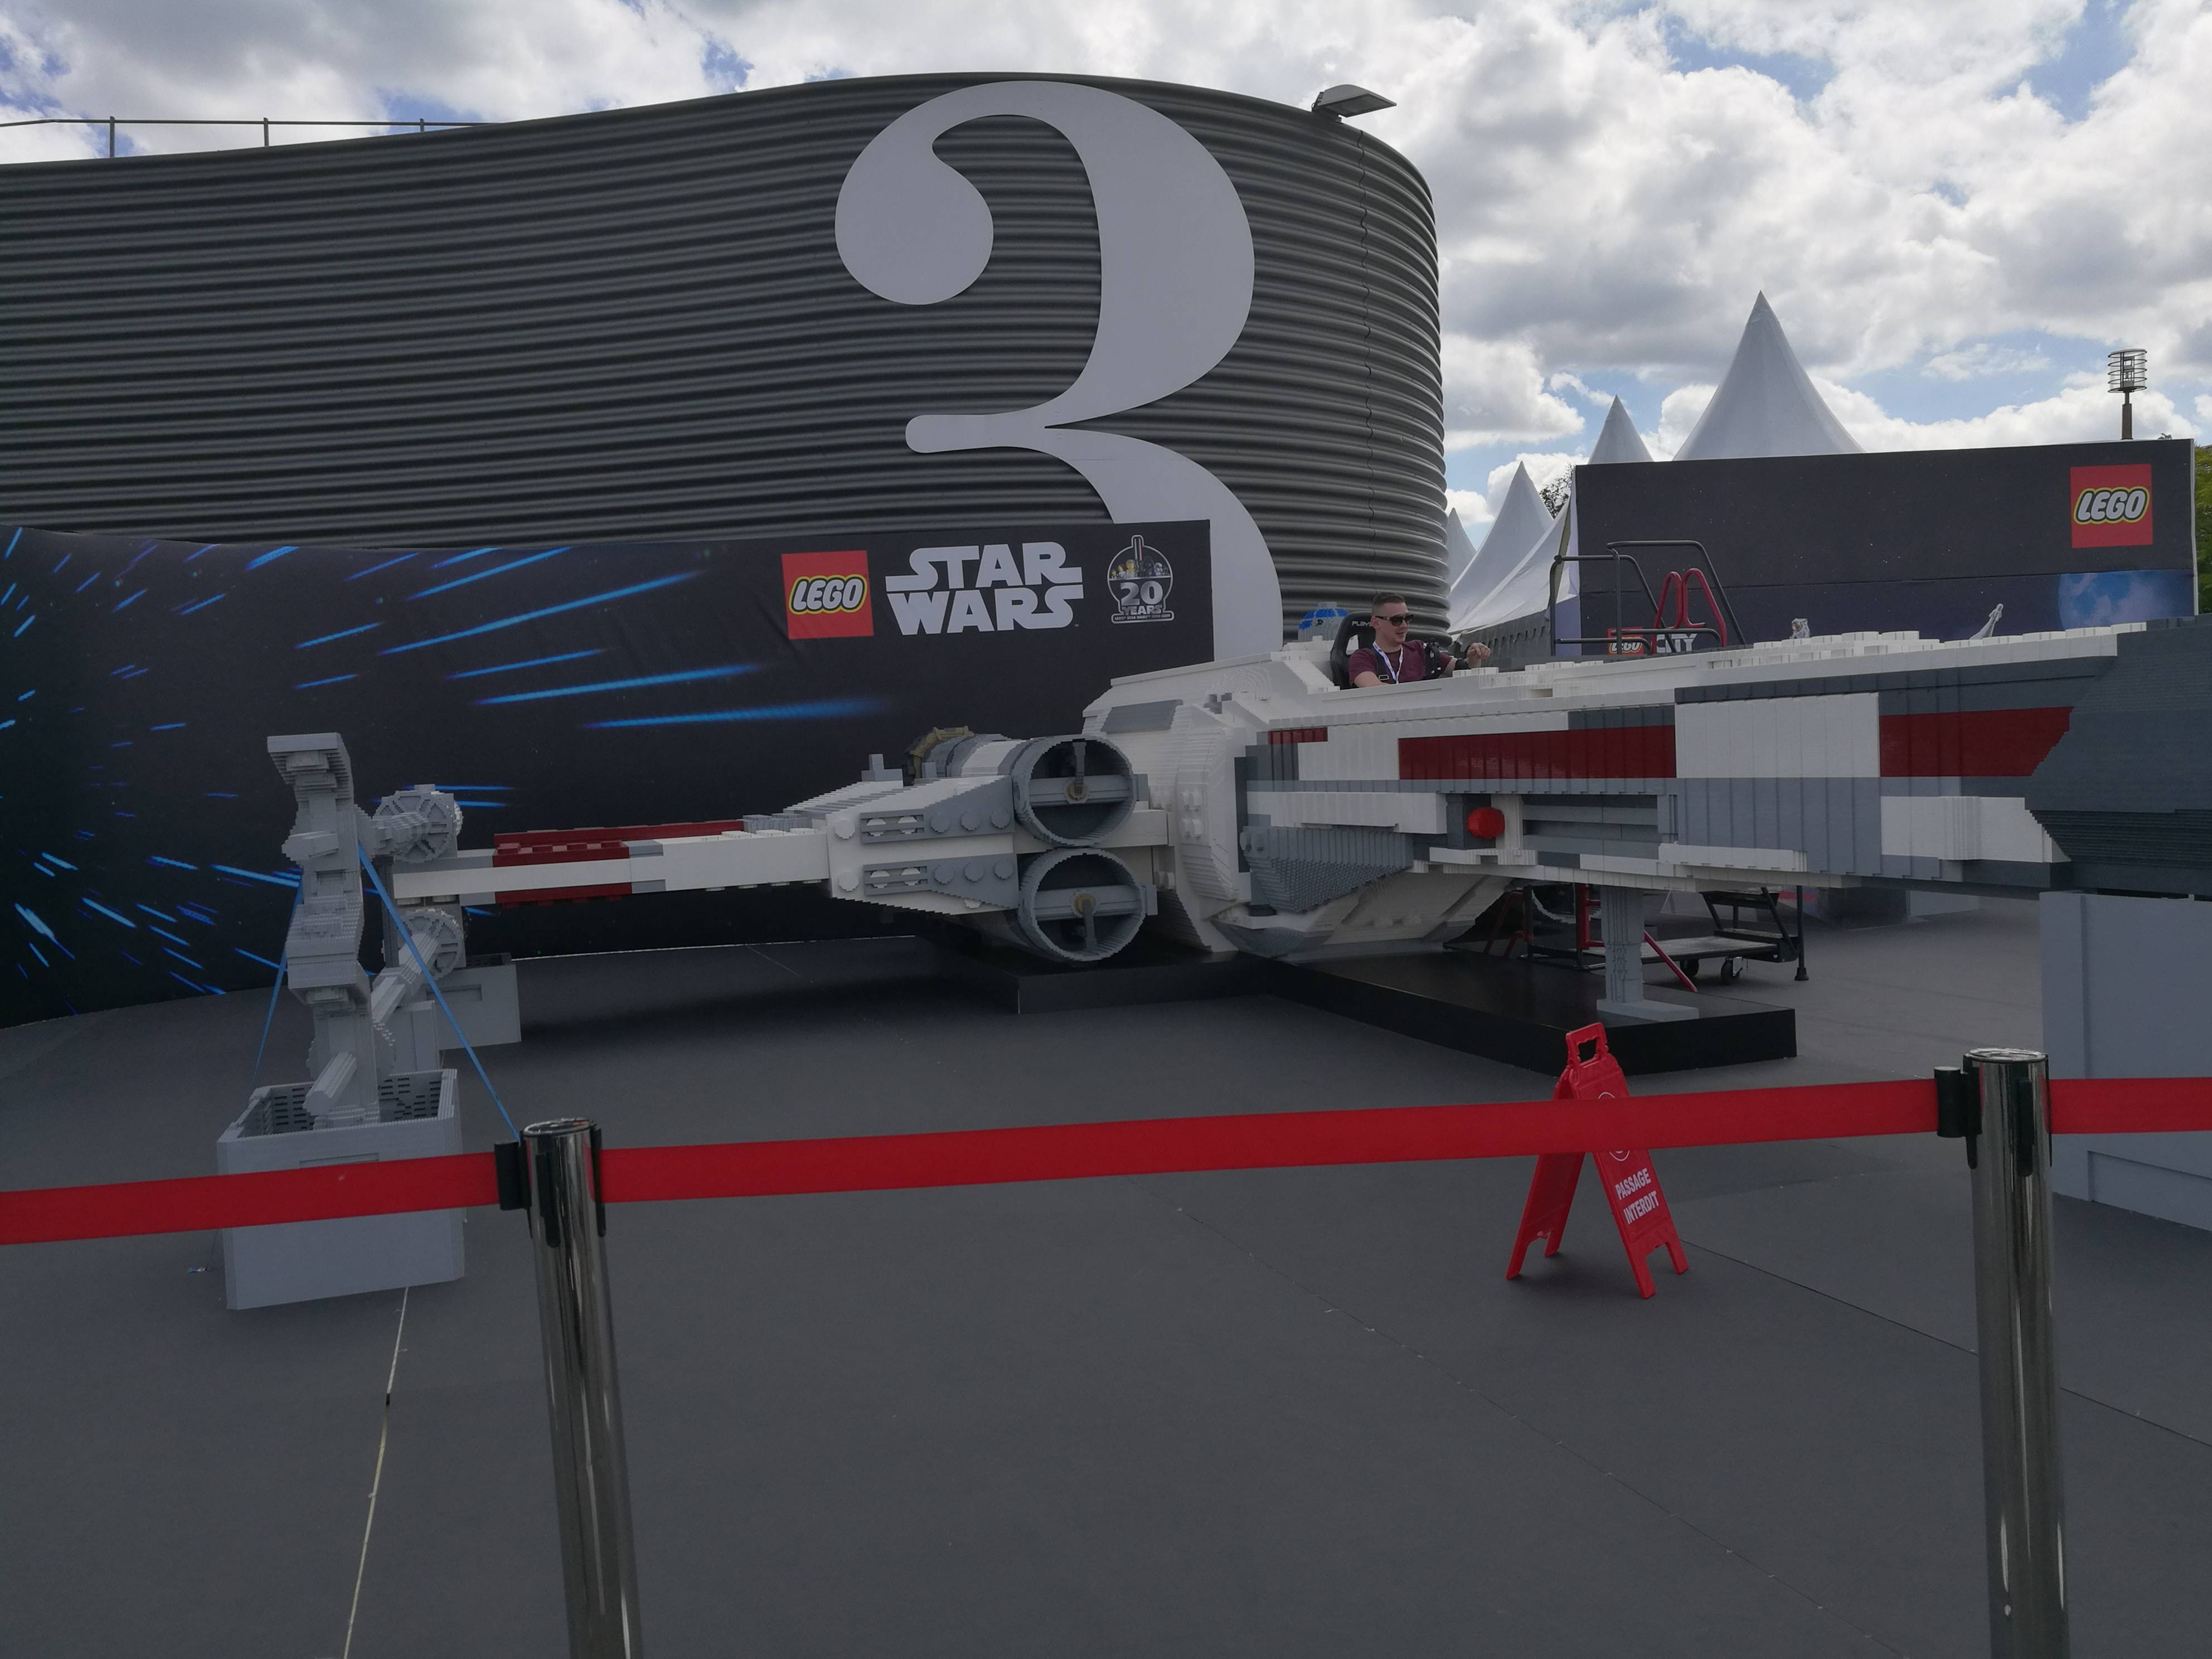 A life-size Lego X-wing fighter